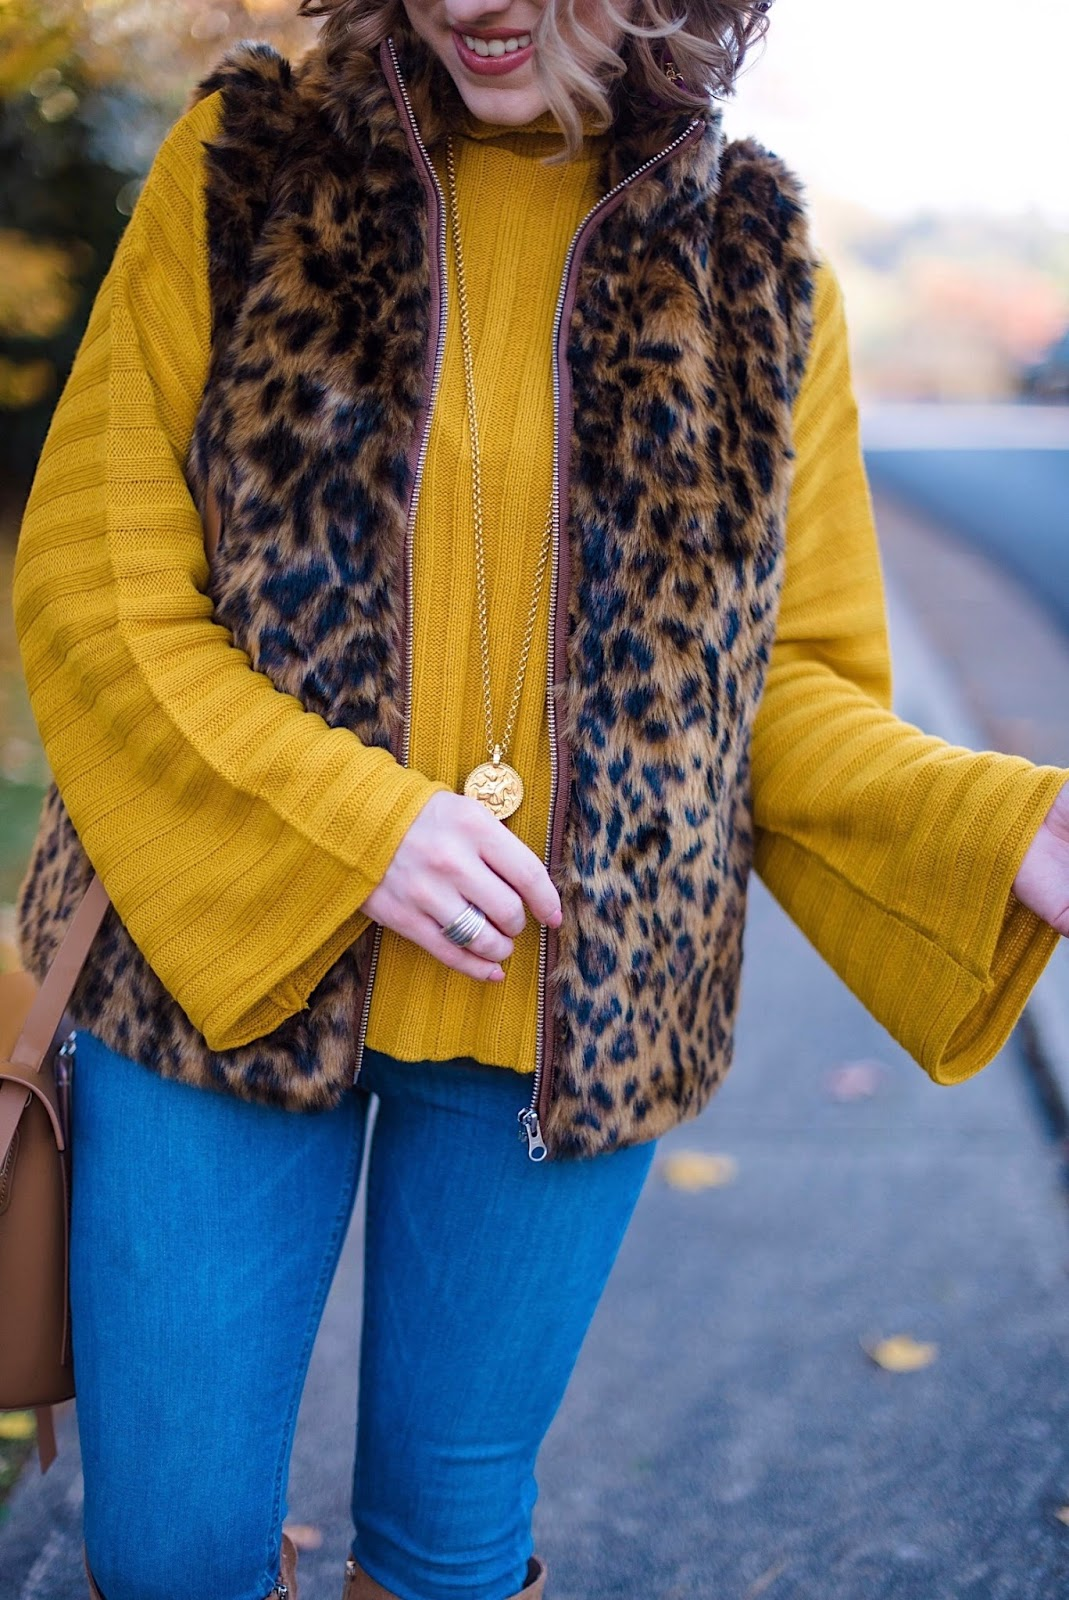 J.Crew Leopard Faux Fur Vest - Something Delightful Blog